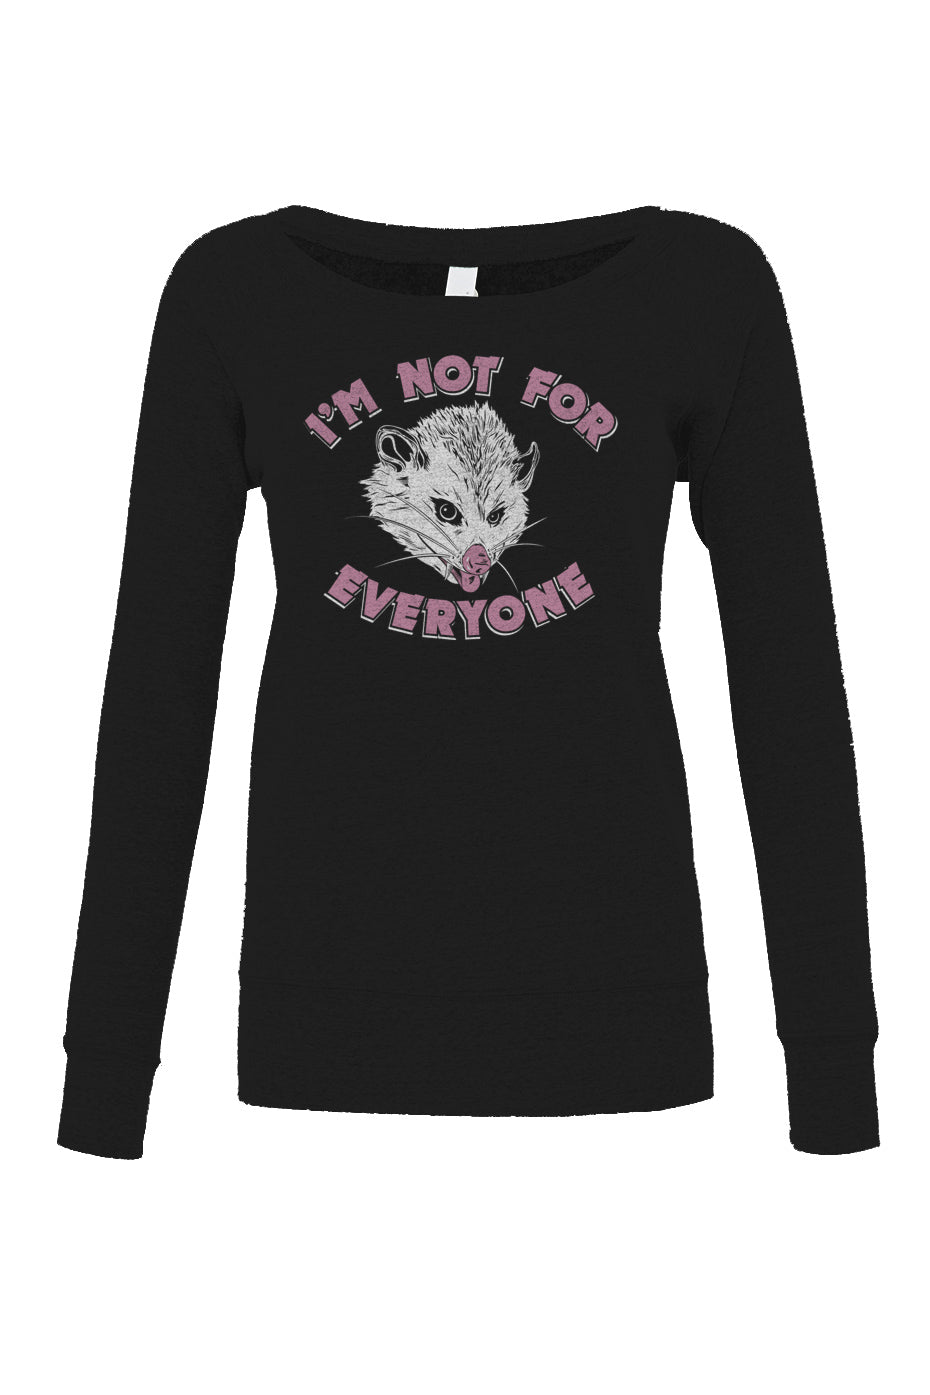 Women's I'm Not For Everyone Opossum Scoop Neck Fleece